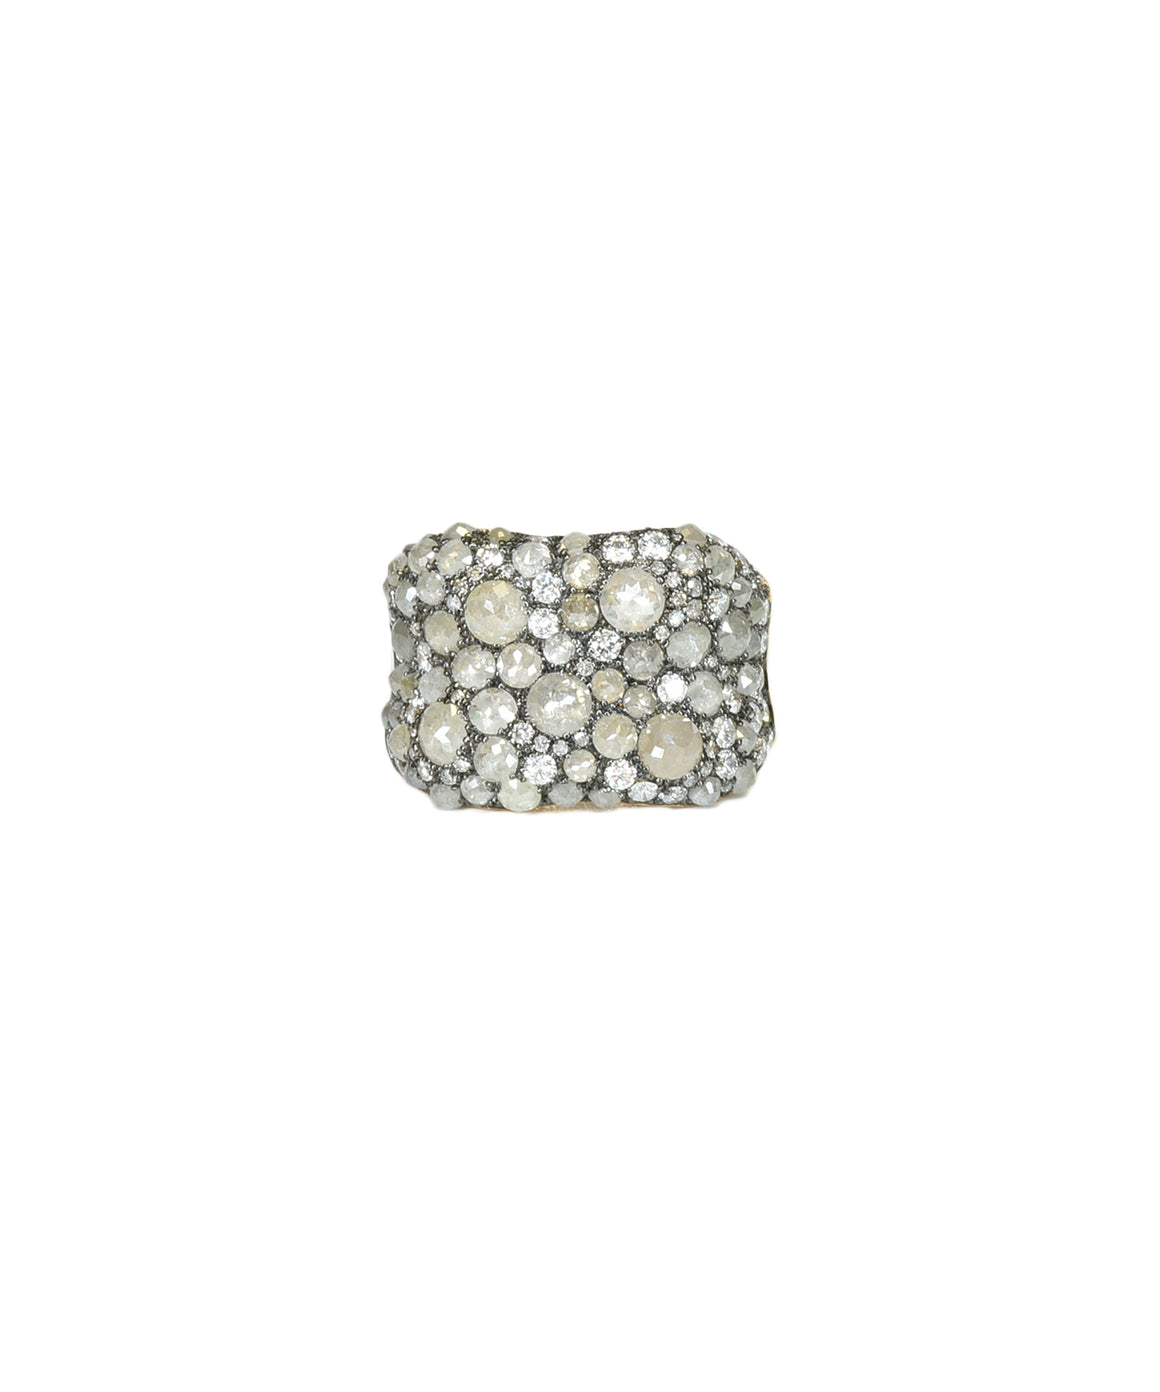 Ring with natural diamonds